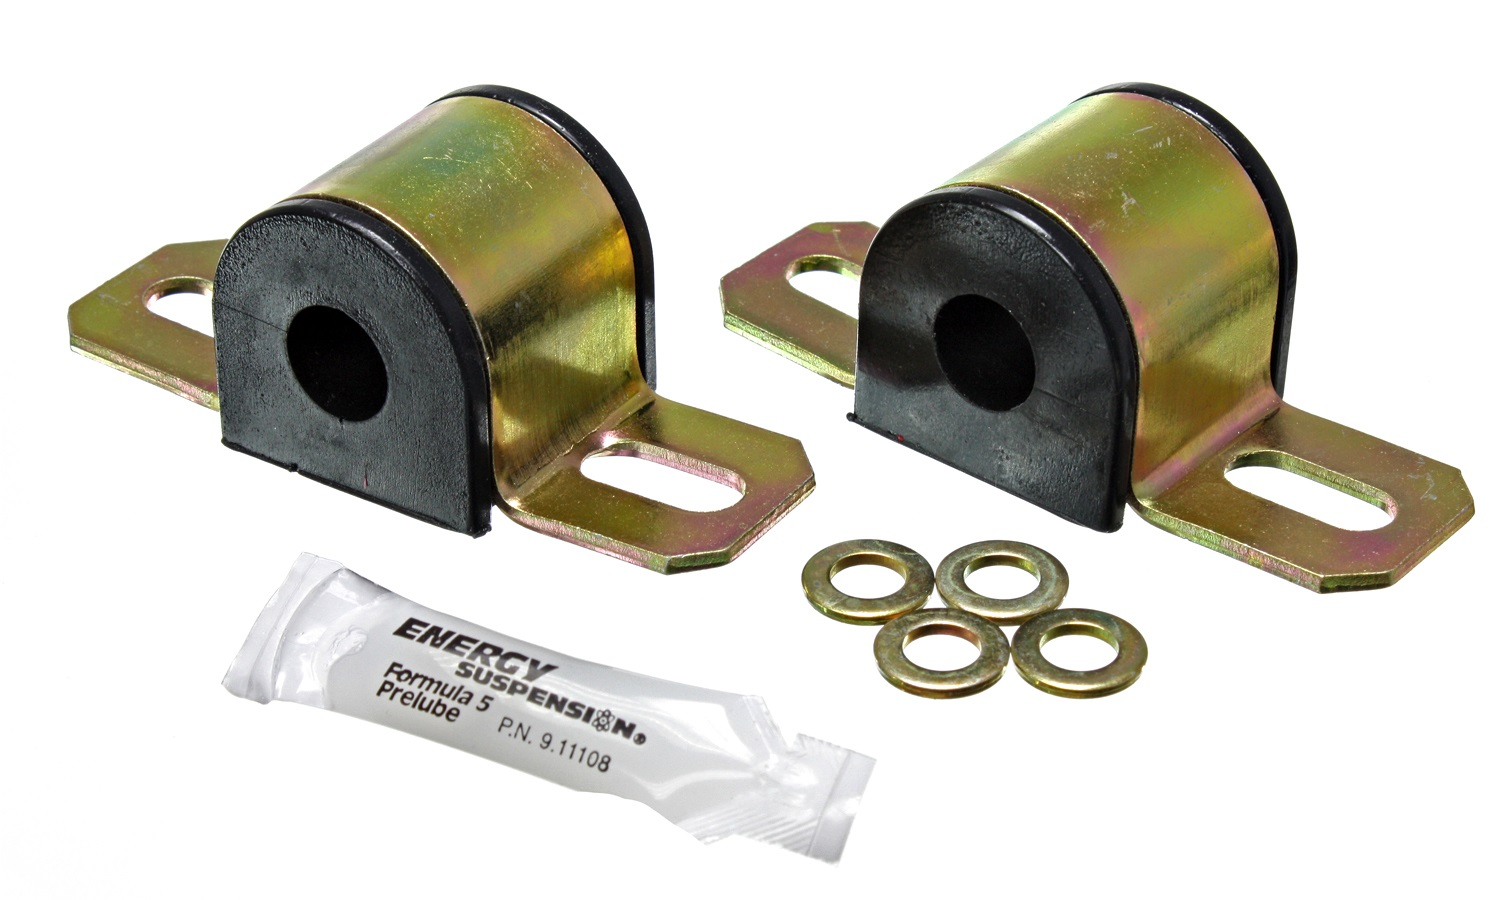 Energy Suspension Suspension Stabilizer Bar Bushing Kit (9.5106G)